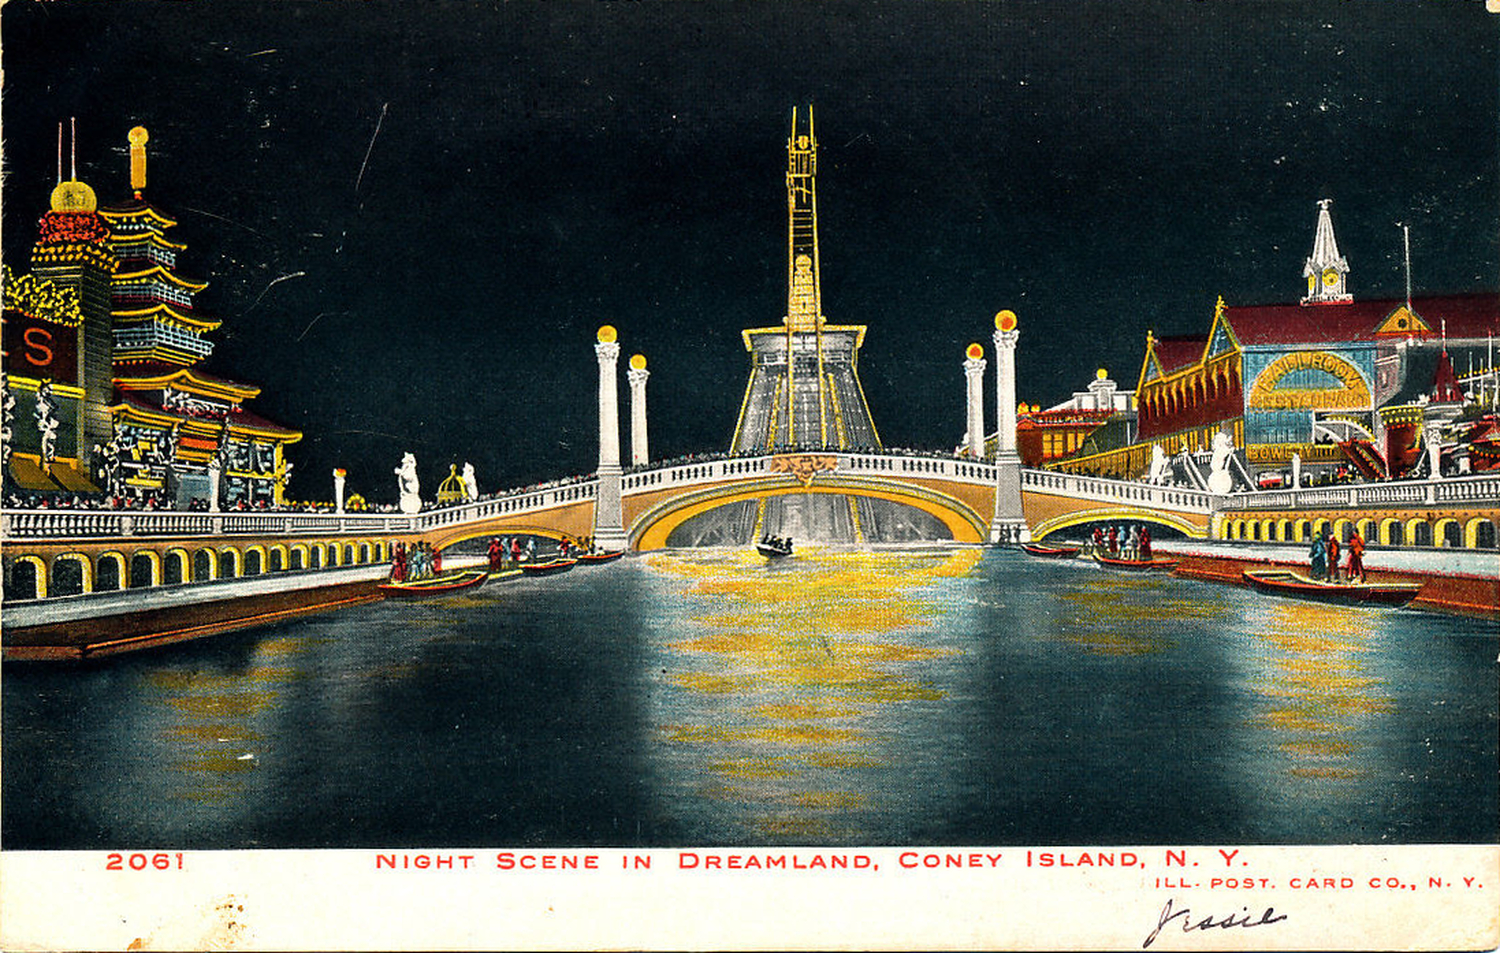 Old New York In Postcards #7 – Dreamland Coney Island Part 1